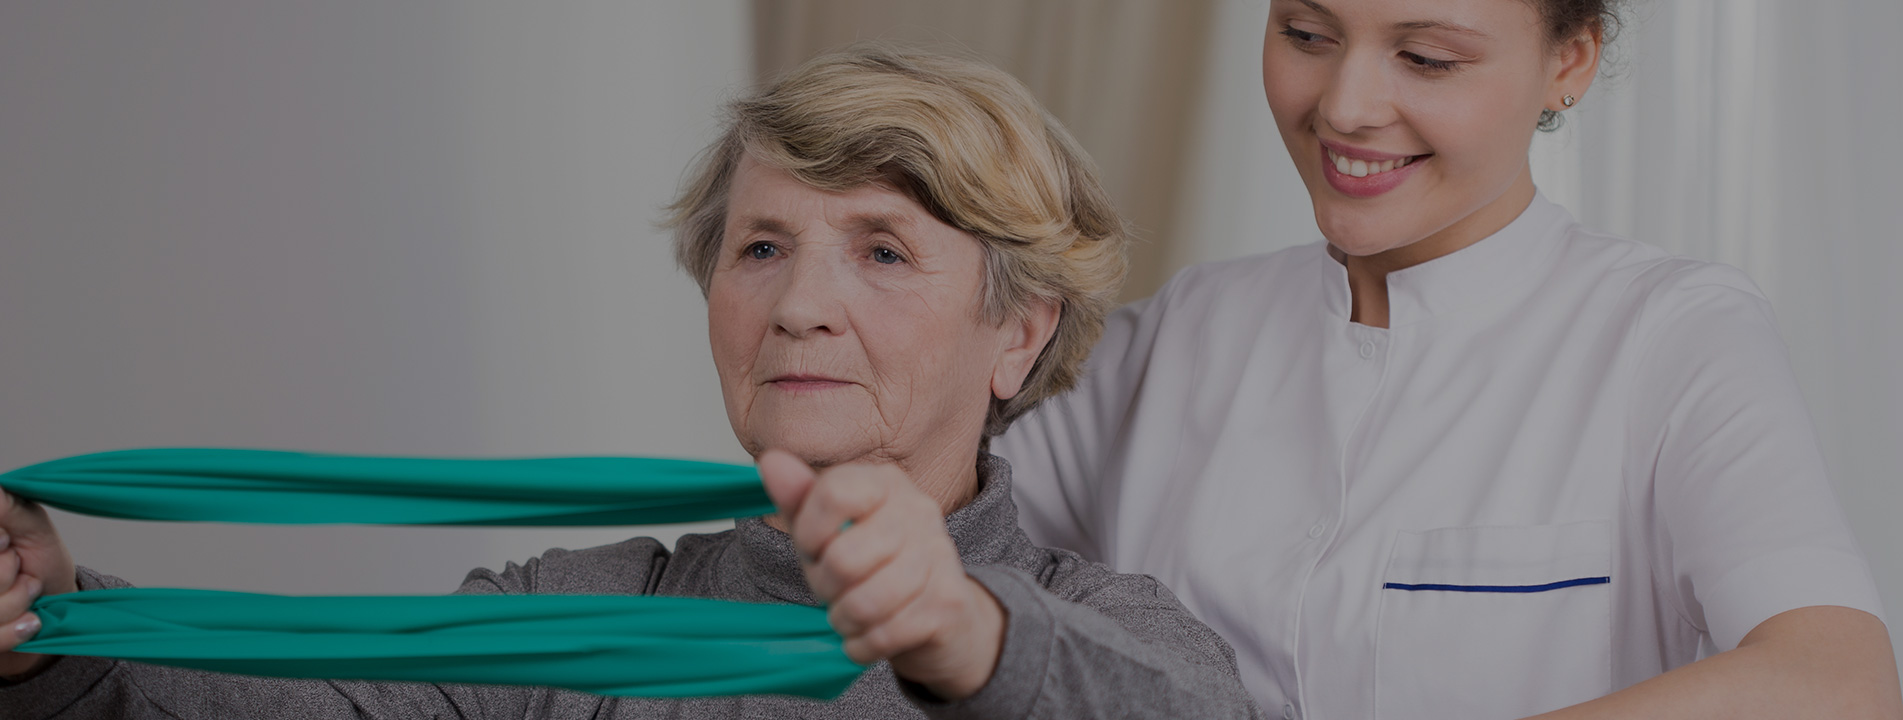 On Demand : Doctor, Physiotherapy, Wellness, Nursing Care